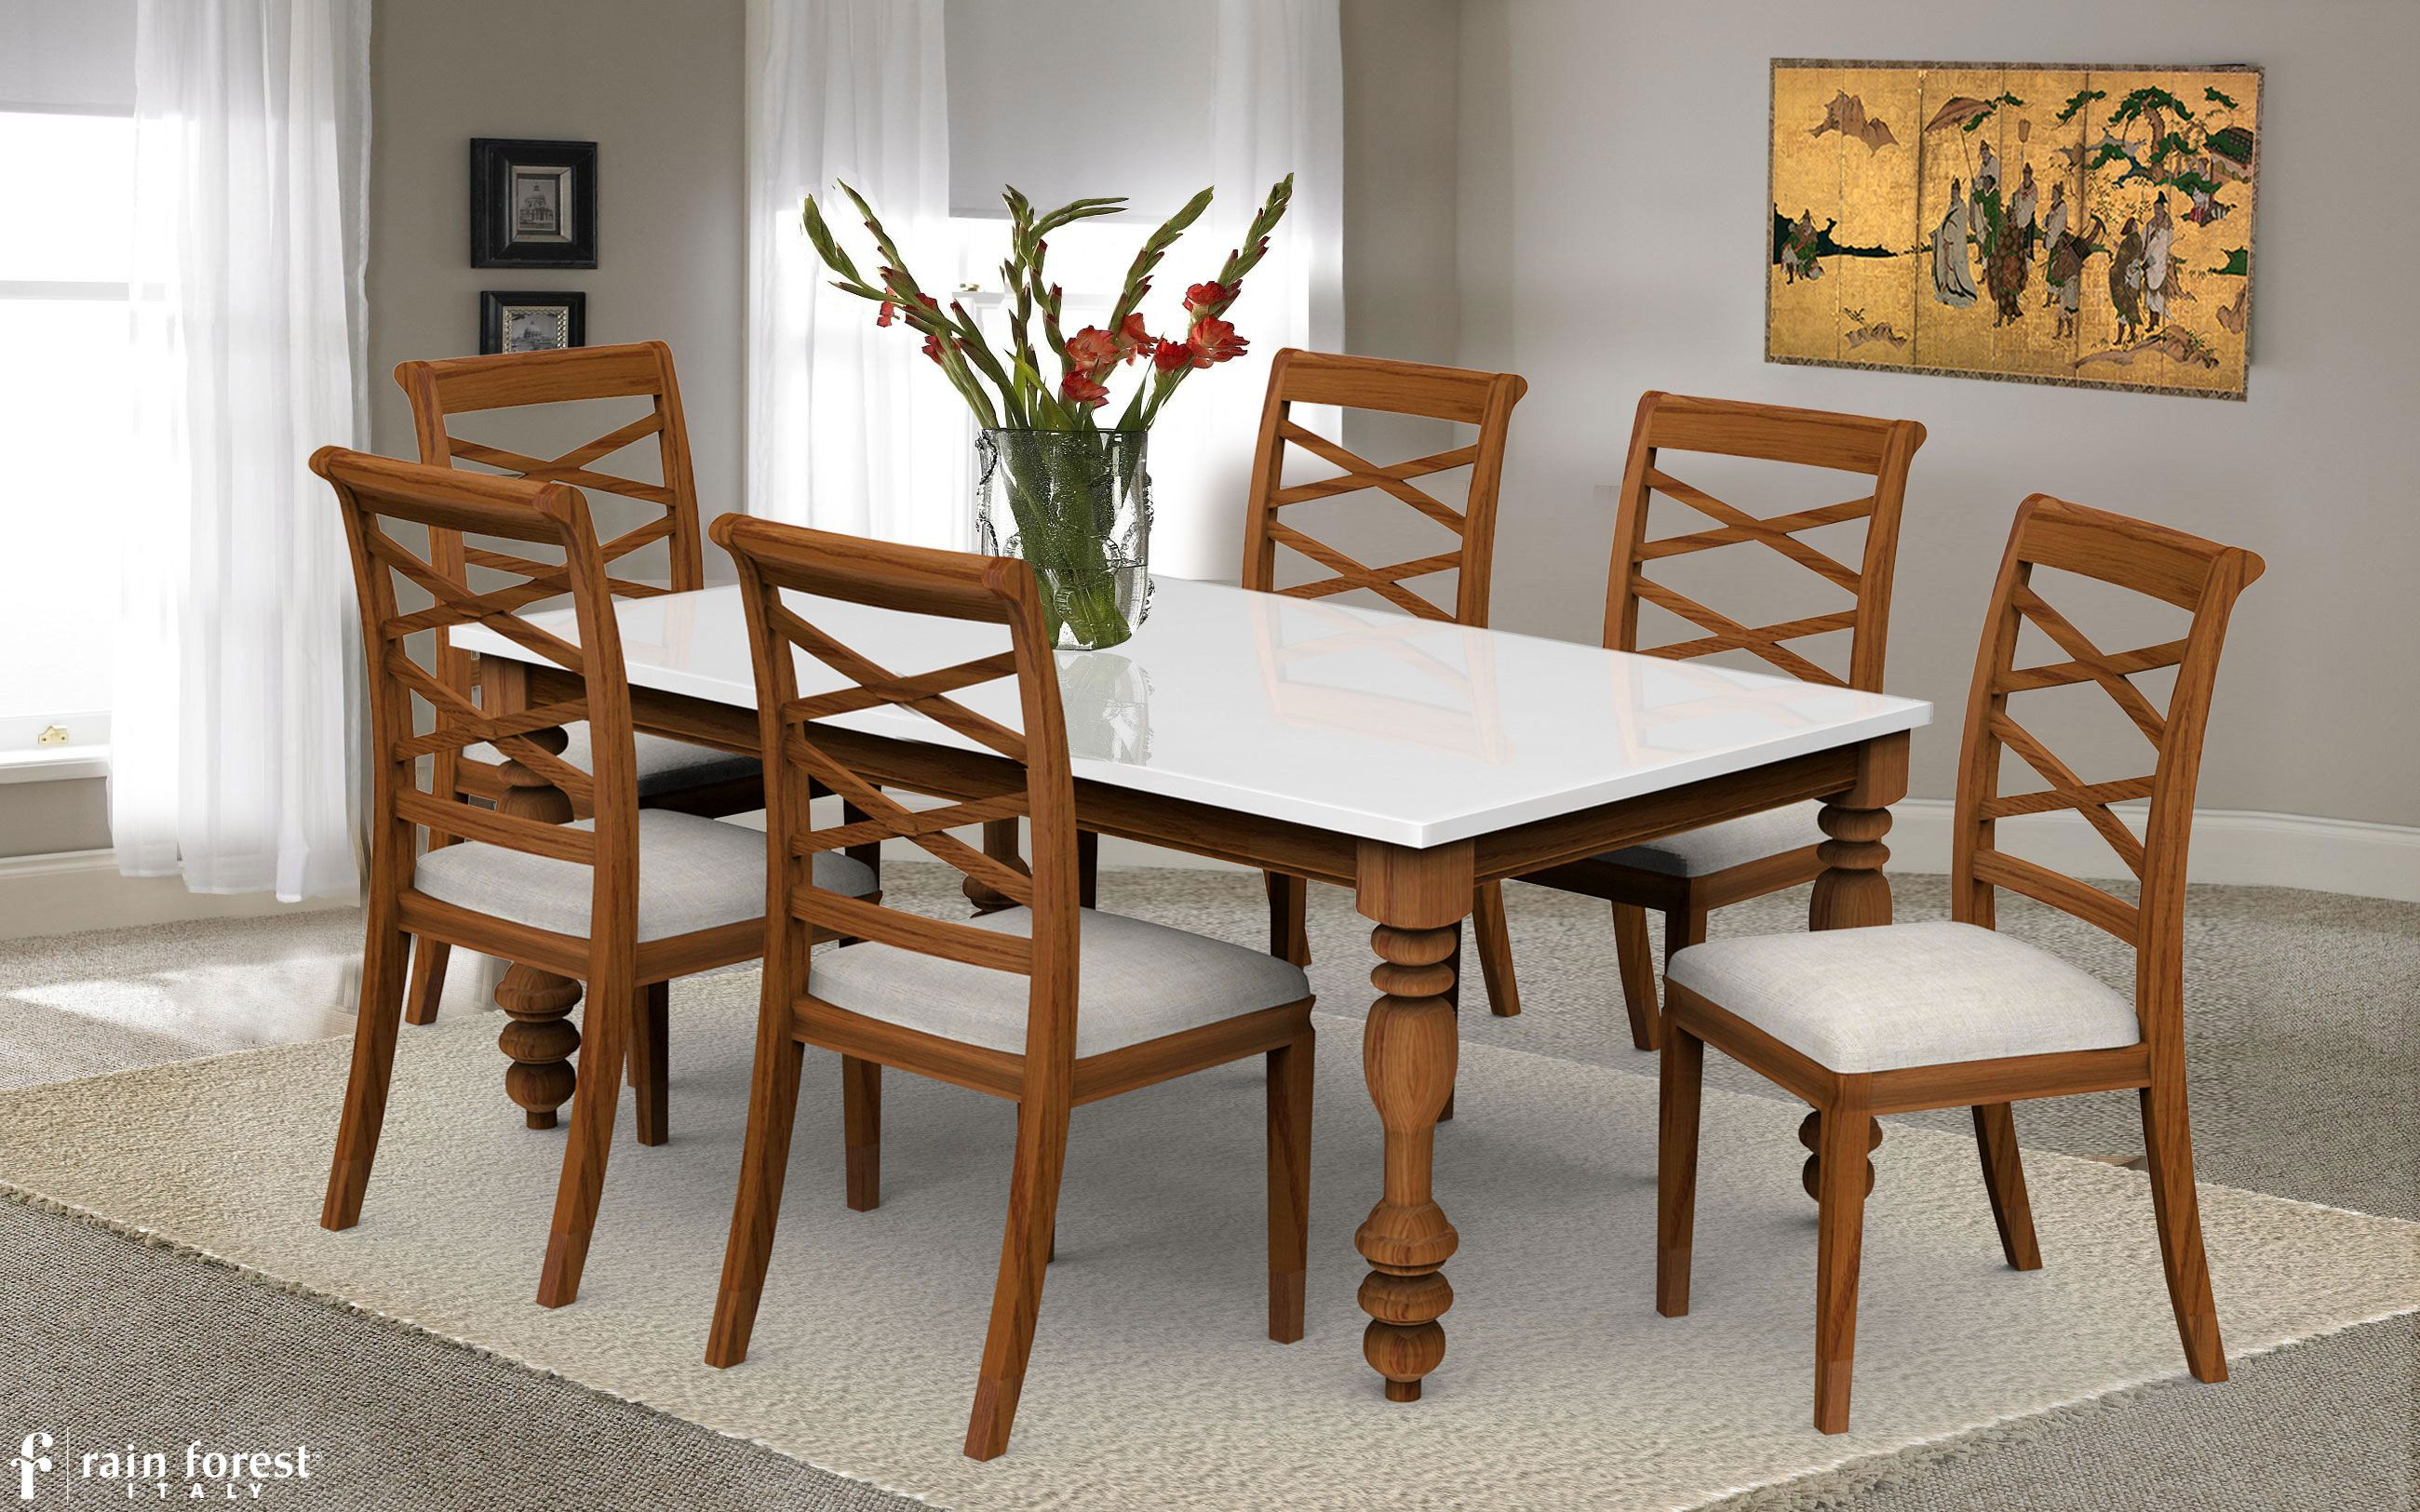 Dining Table Designs Dining Table Dining Table Designs Dining Table Ideas Dining